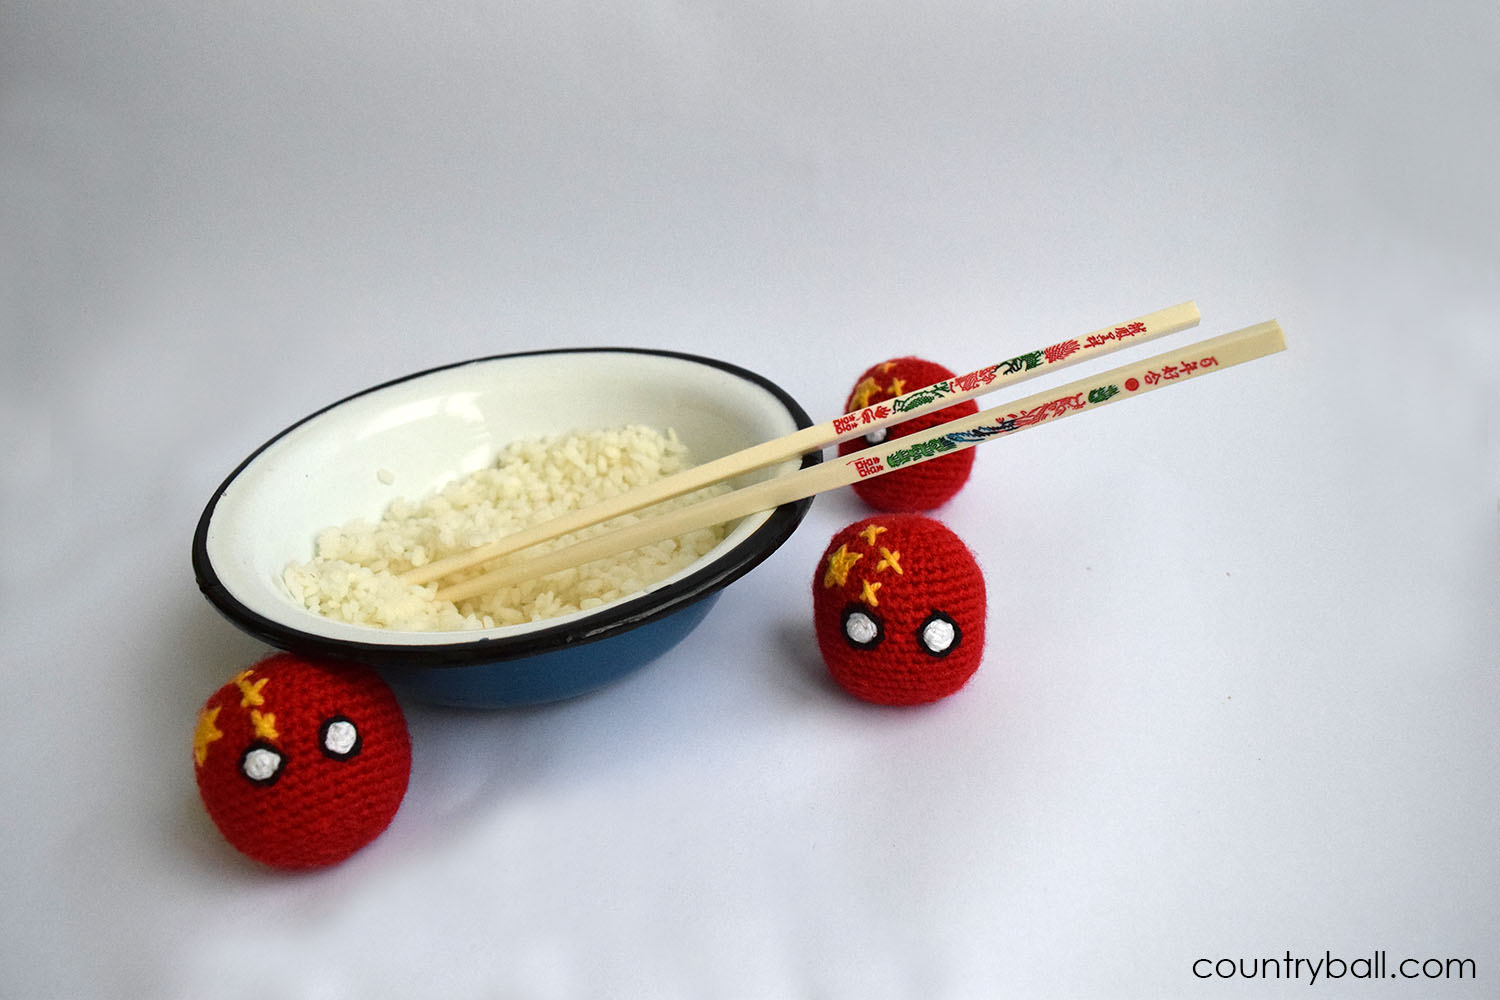 Chinaball with a bowl of Rice